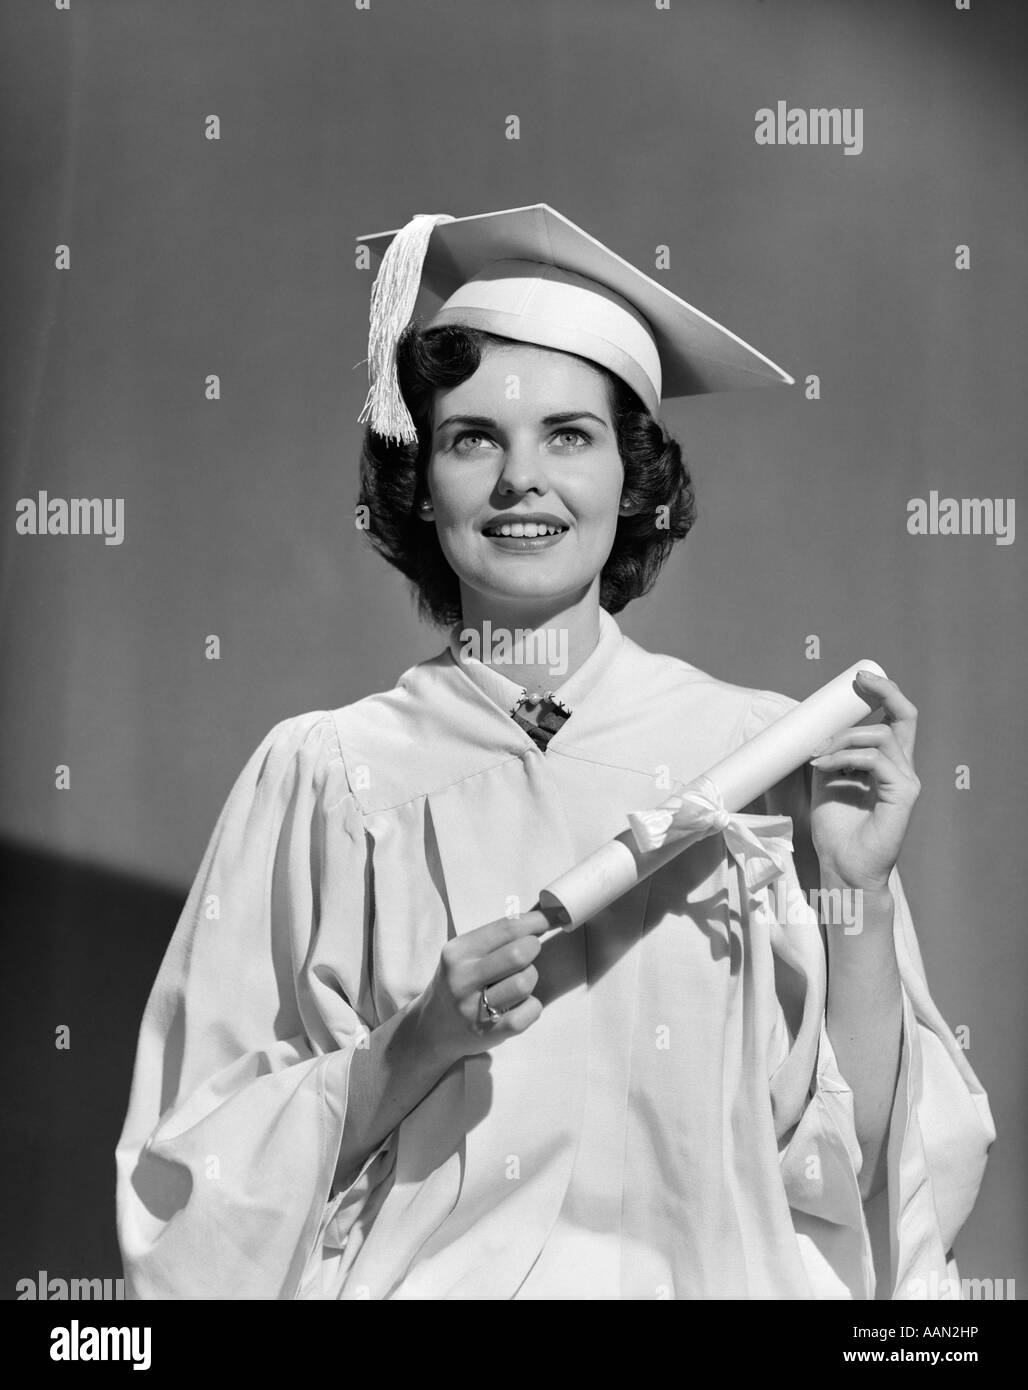 1950s WOMAN TEEN GIRL WHITE CAP GOWN HOLDING GRADUATION DIPLOMA - Stock Image